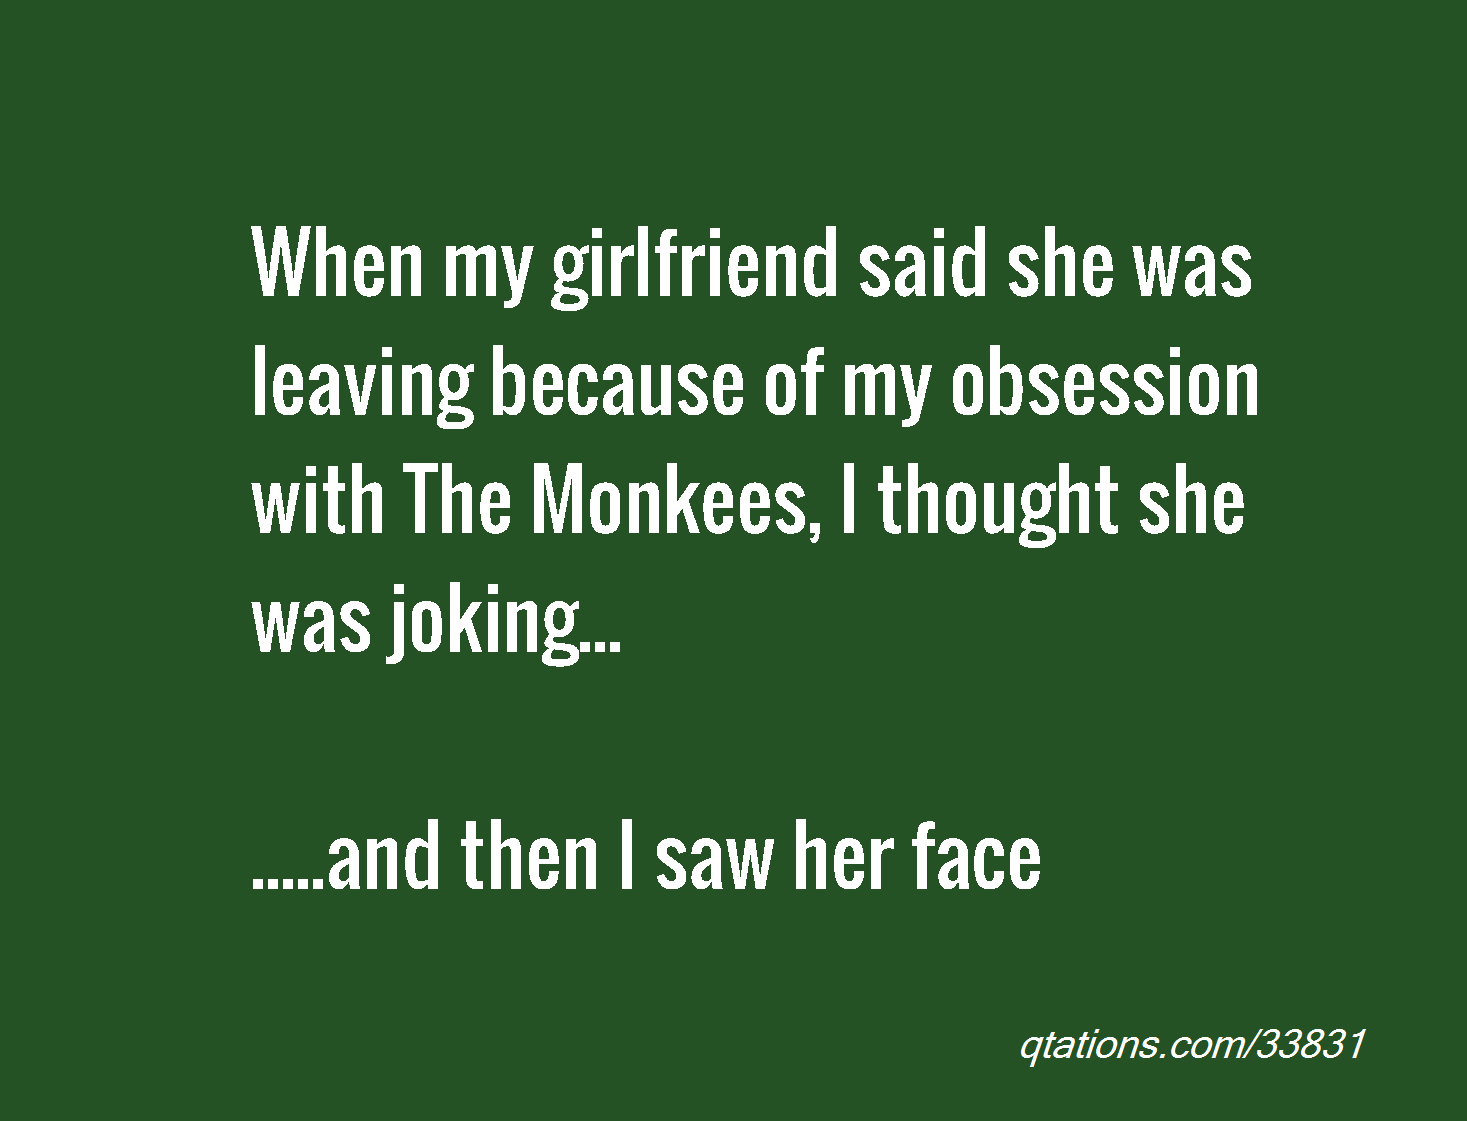 Obsession with the Monkees